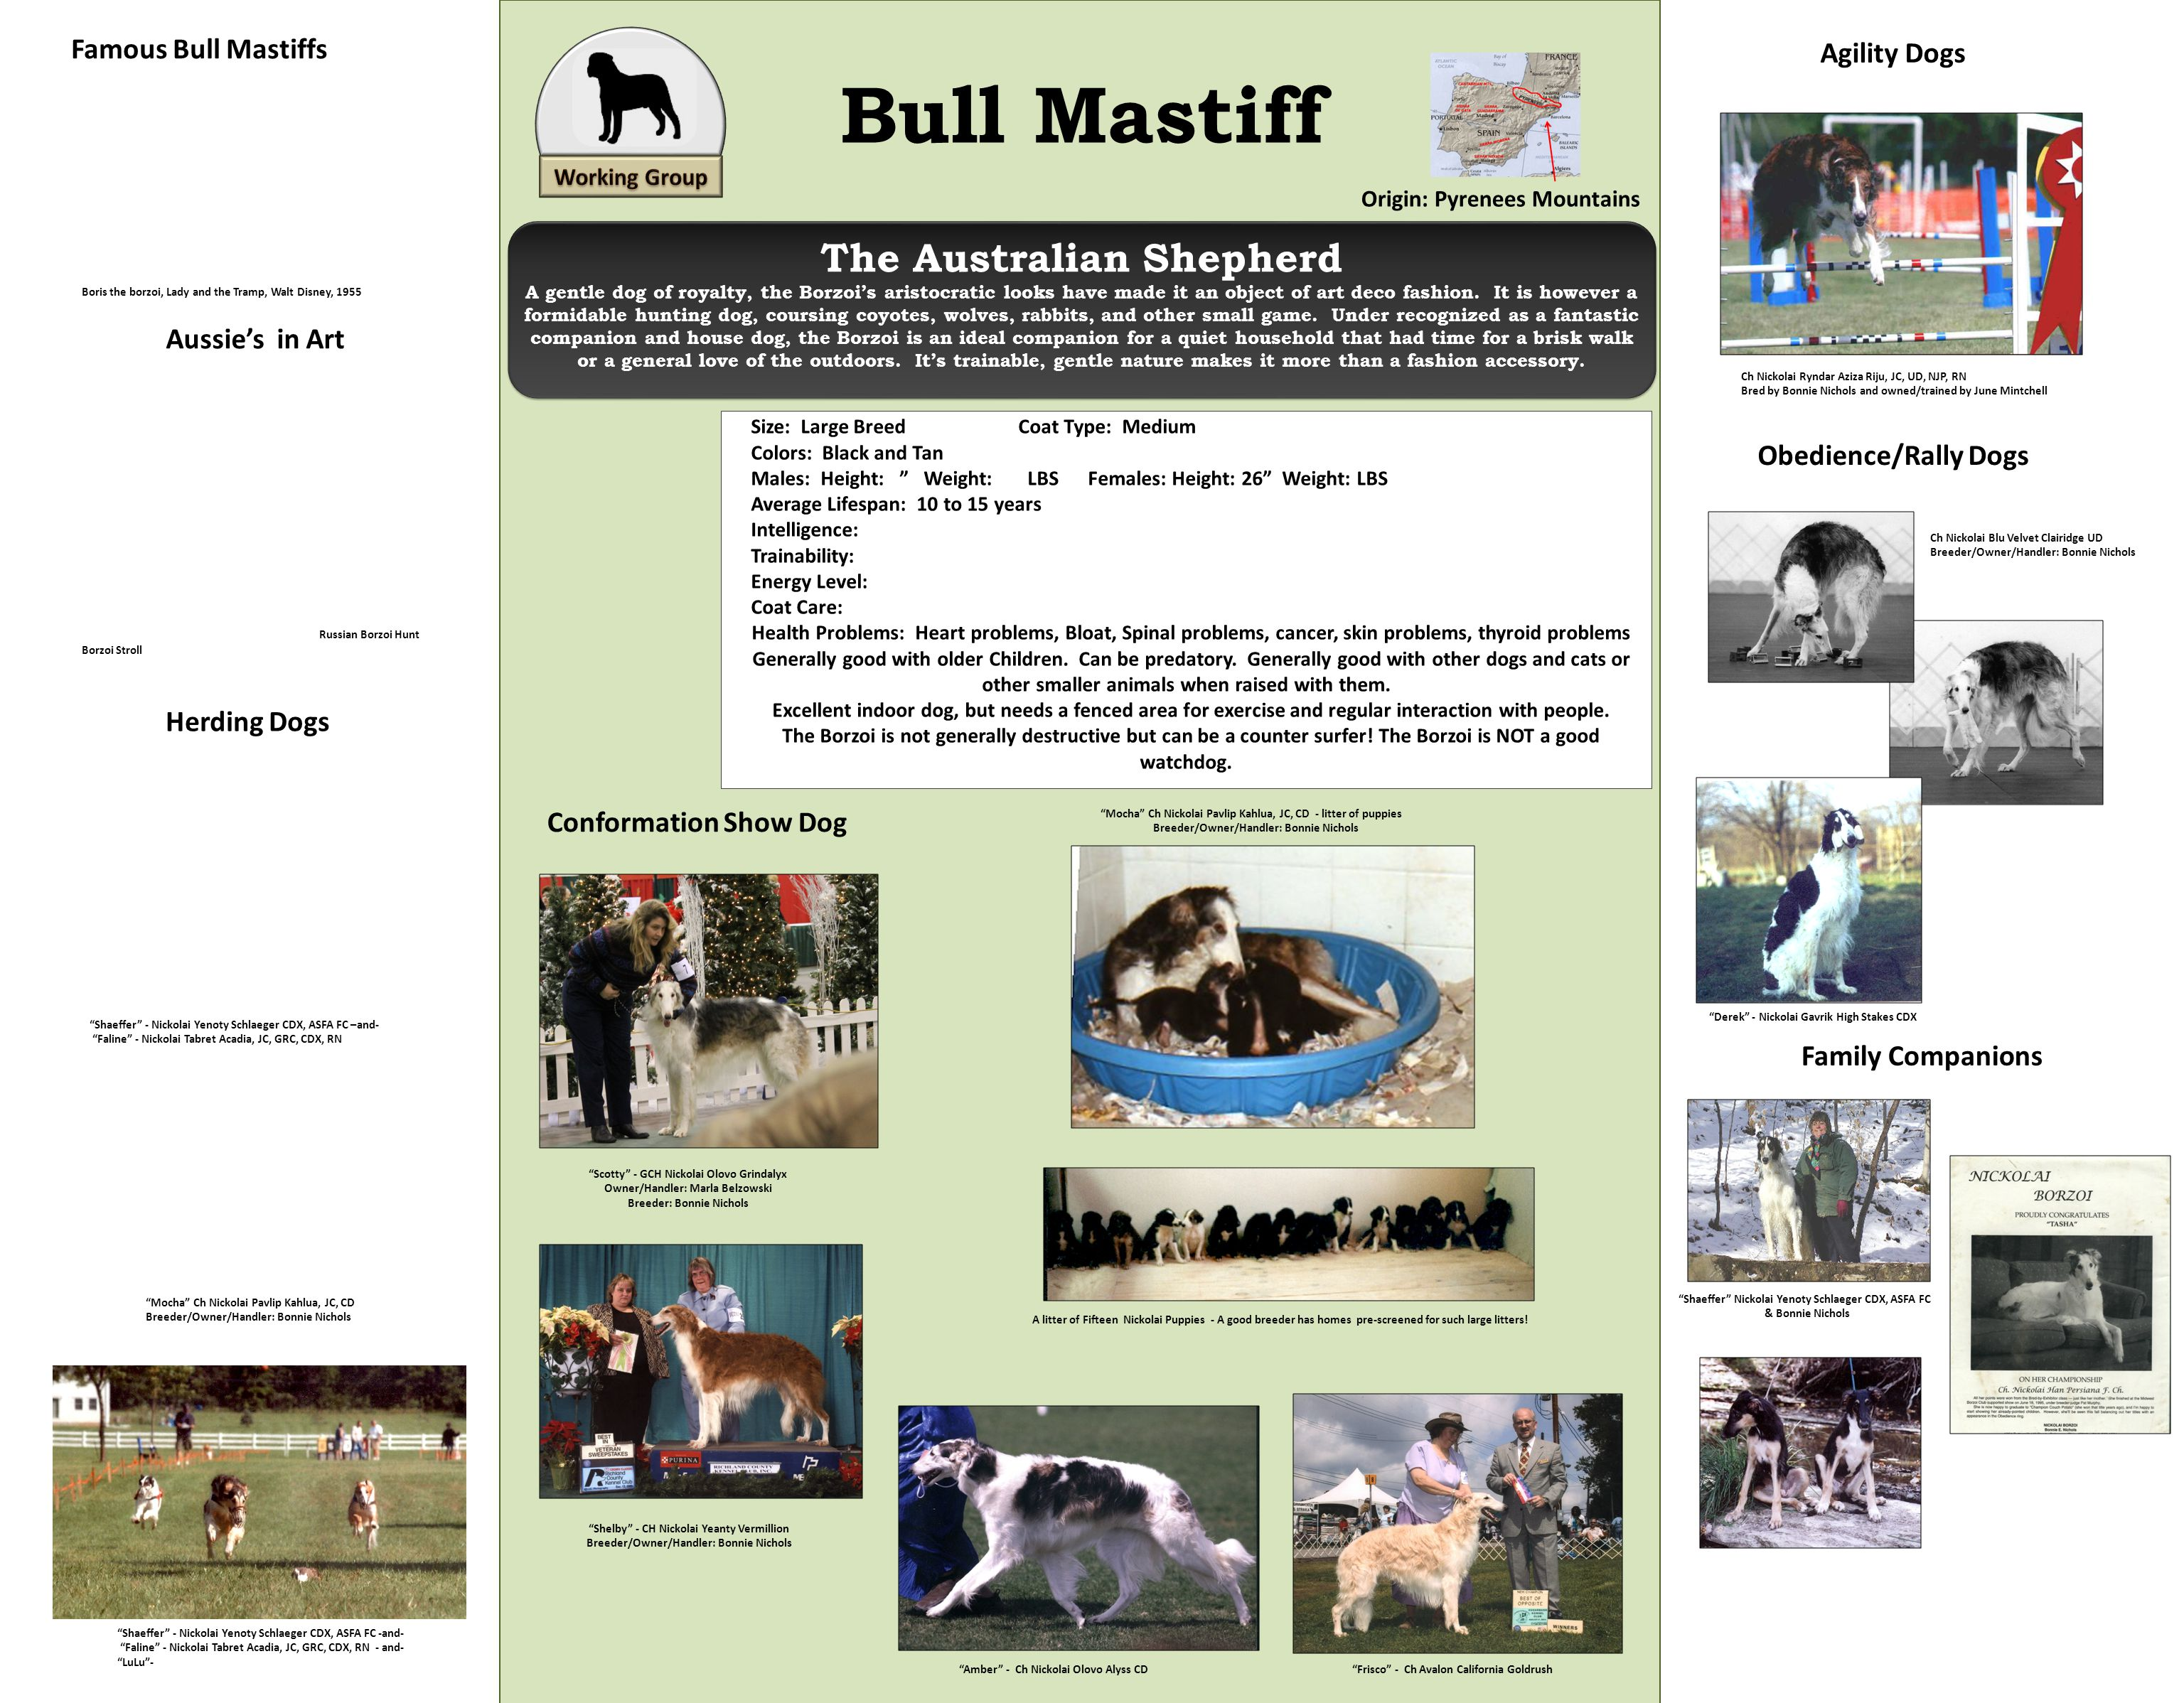 Bull Mastiff Origin: Pyrenees Mountains Size: Large Breed Coat Type: Medium Colors: Black and Tan Males: Height: Weight: LBS Females: Height: 26 Weigh